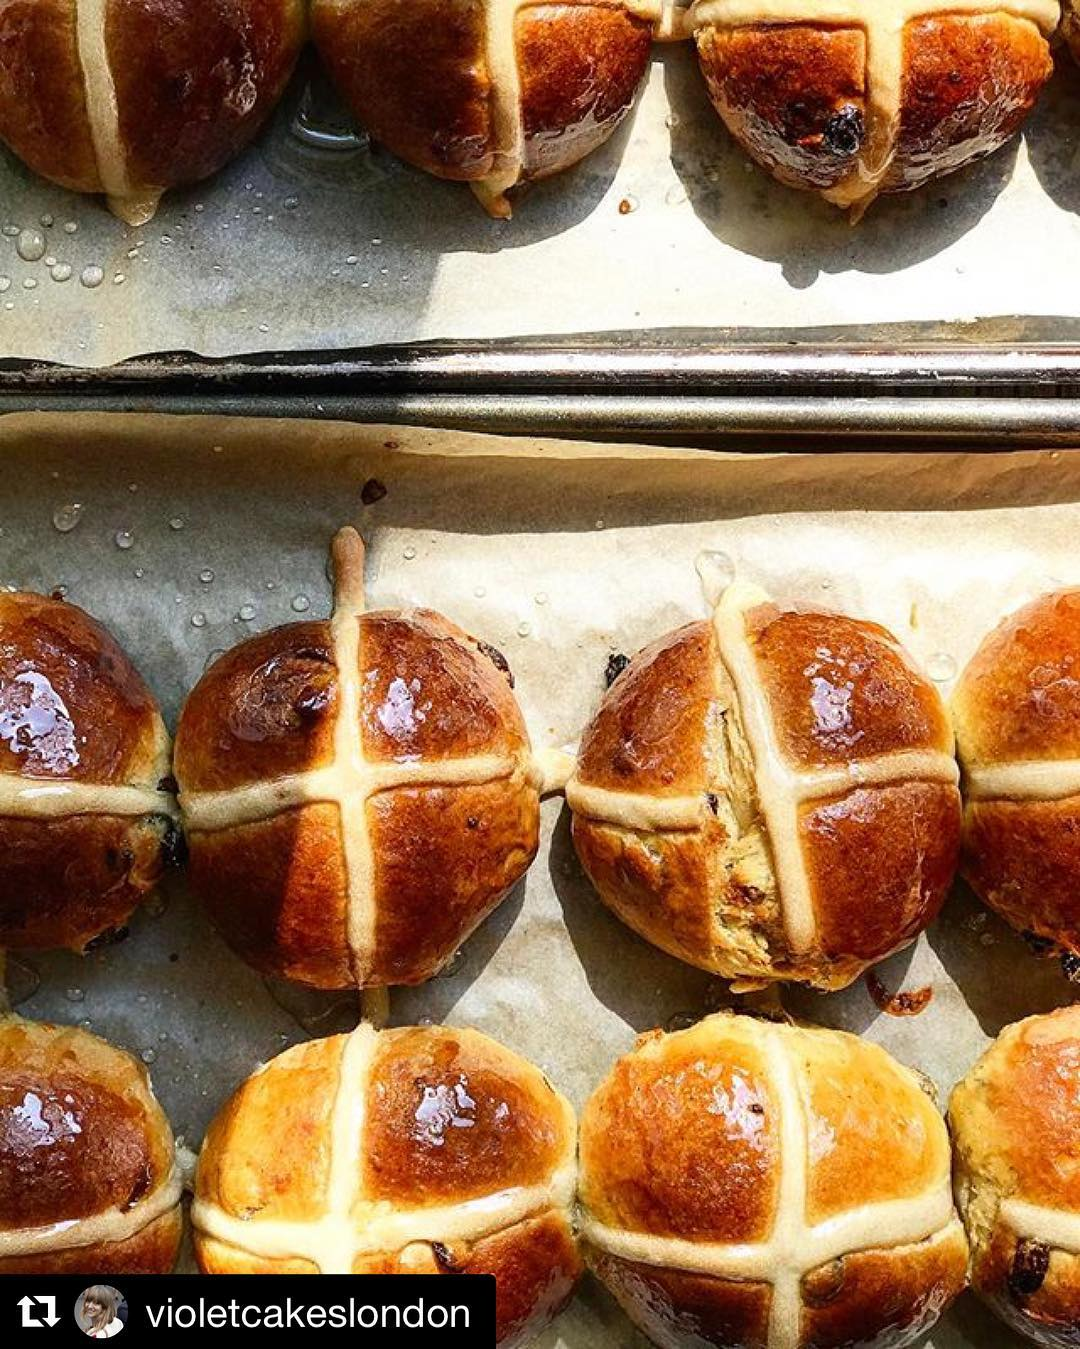 Regram violetcakeslondon  Warm hot cross buns cooling in thehellip